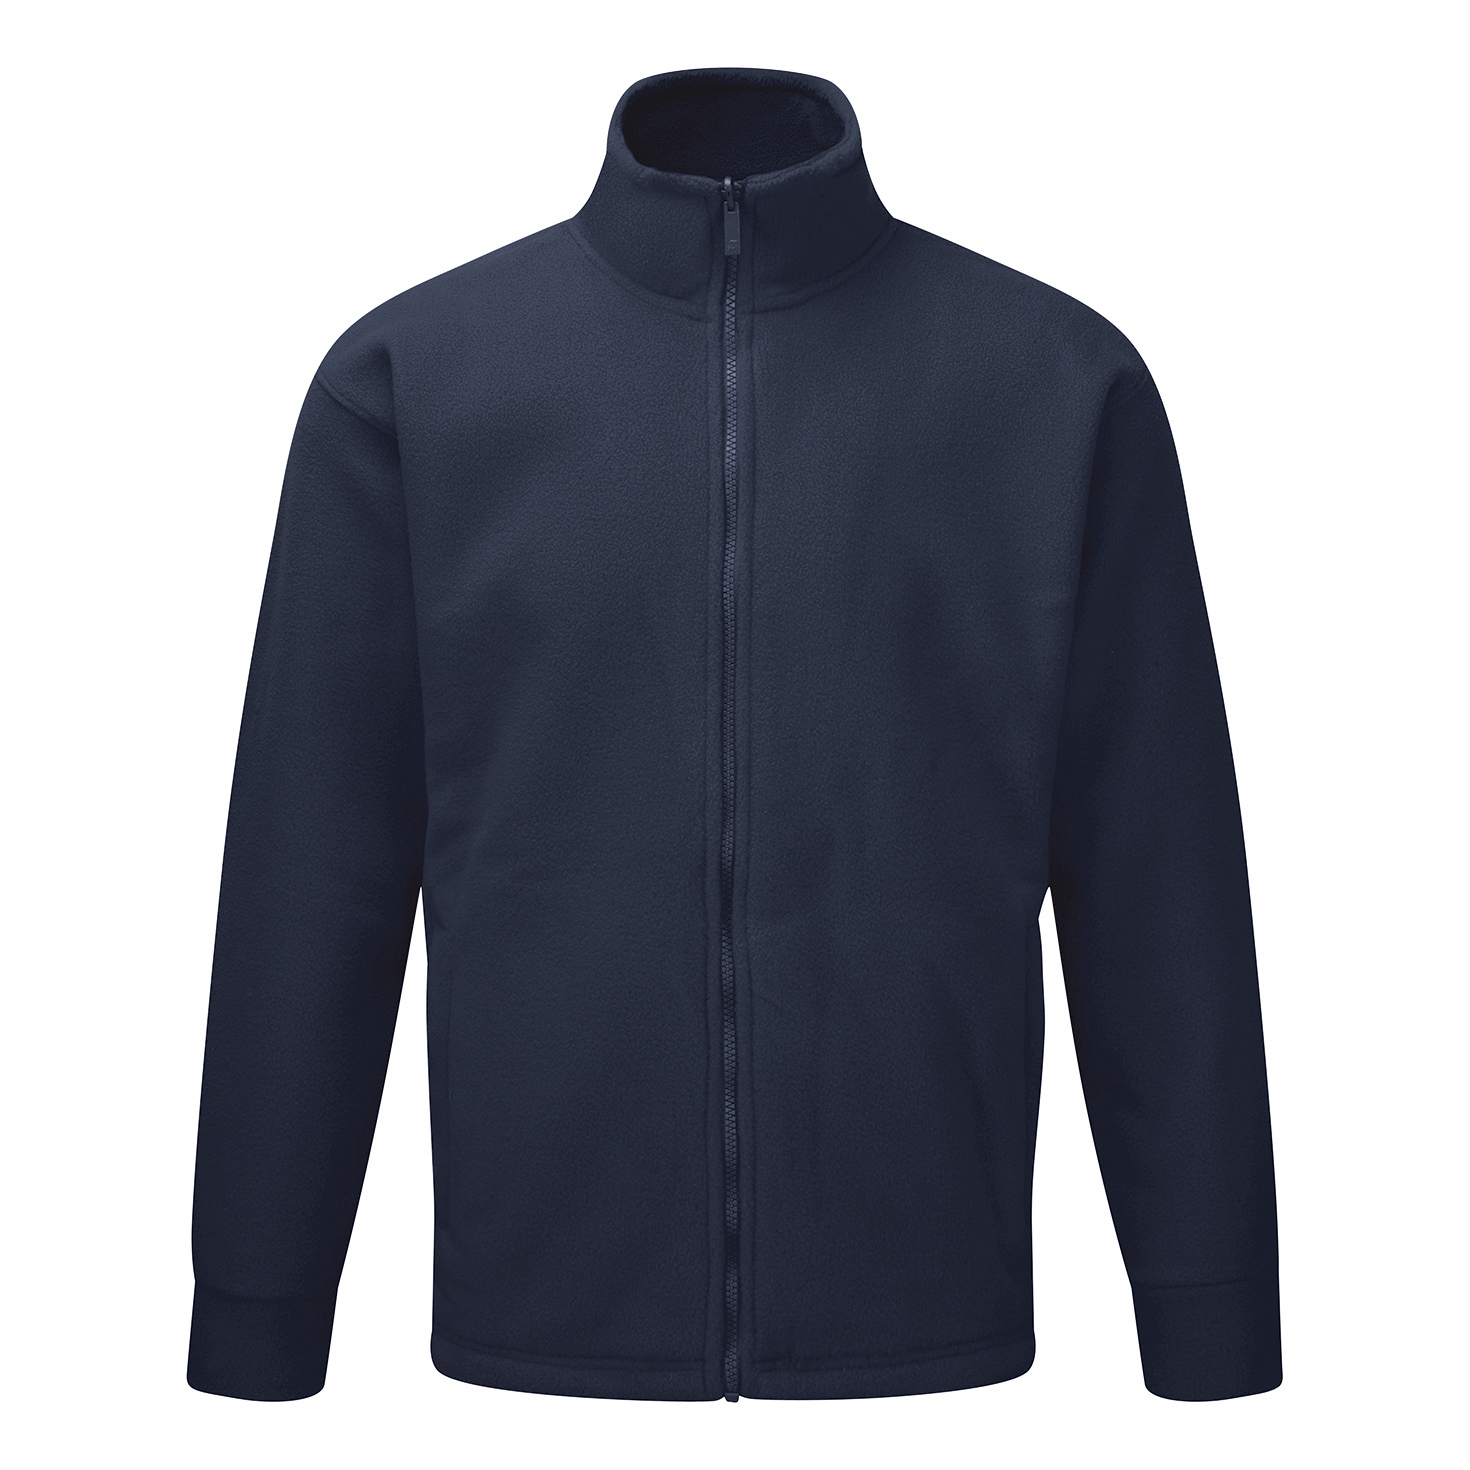 Classic Fleece Jacket Elasticated Cuffs Full Zip Front Medium Navy Blue Ref FLJNS *1-3 Days Lead Time*